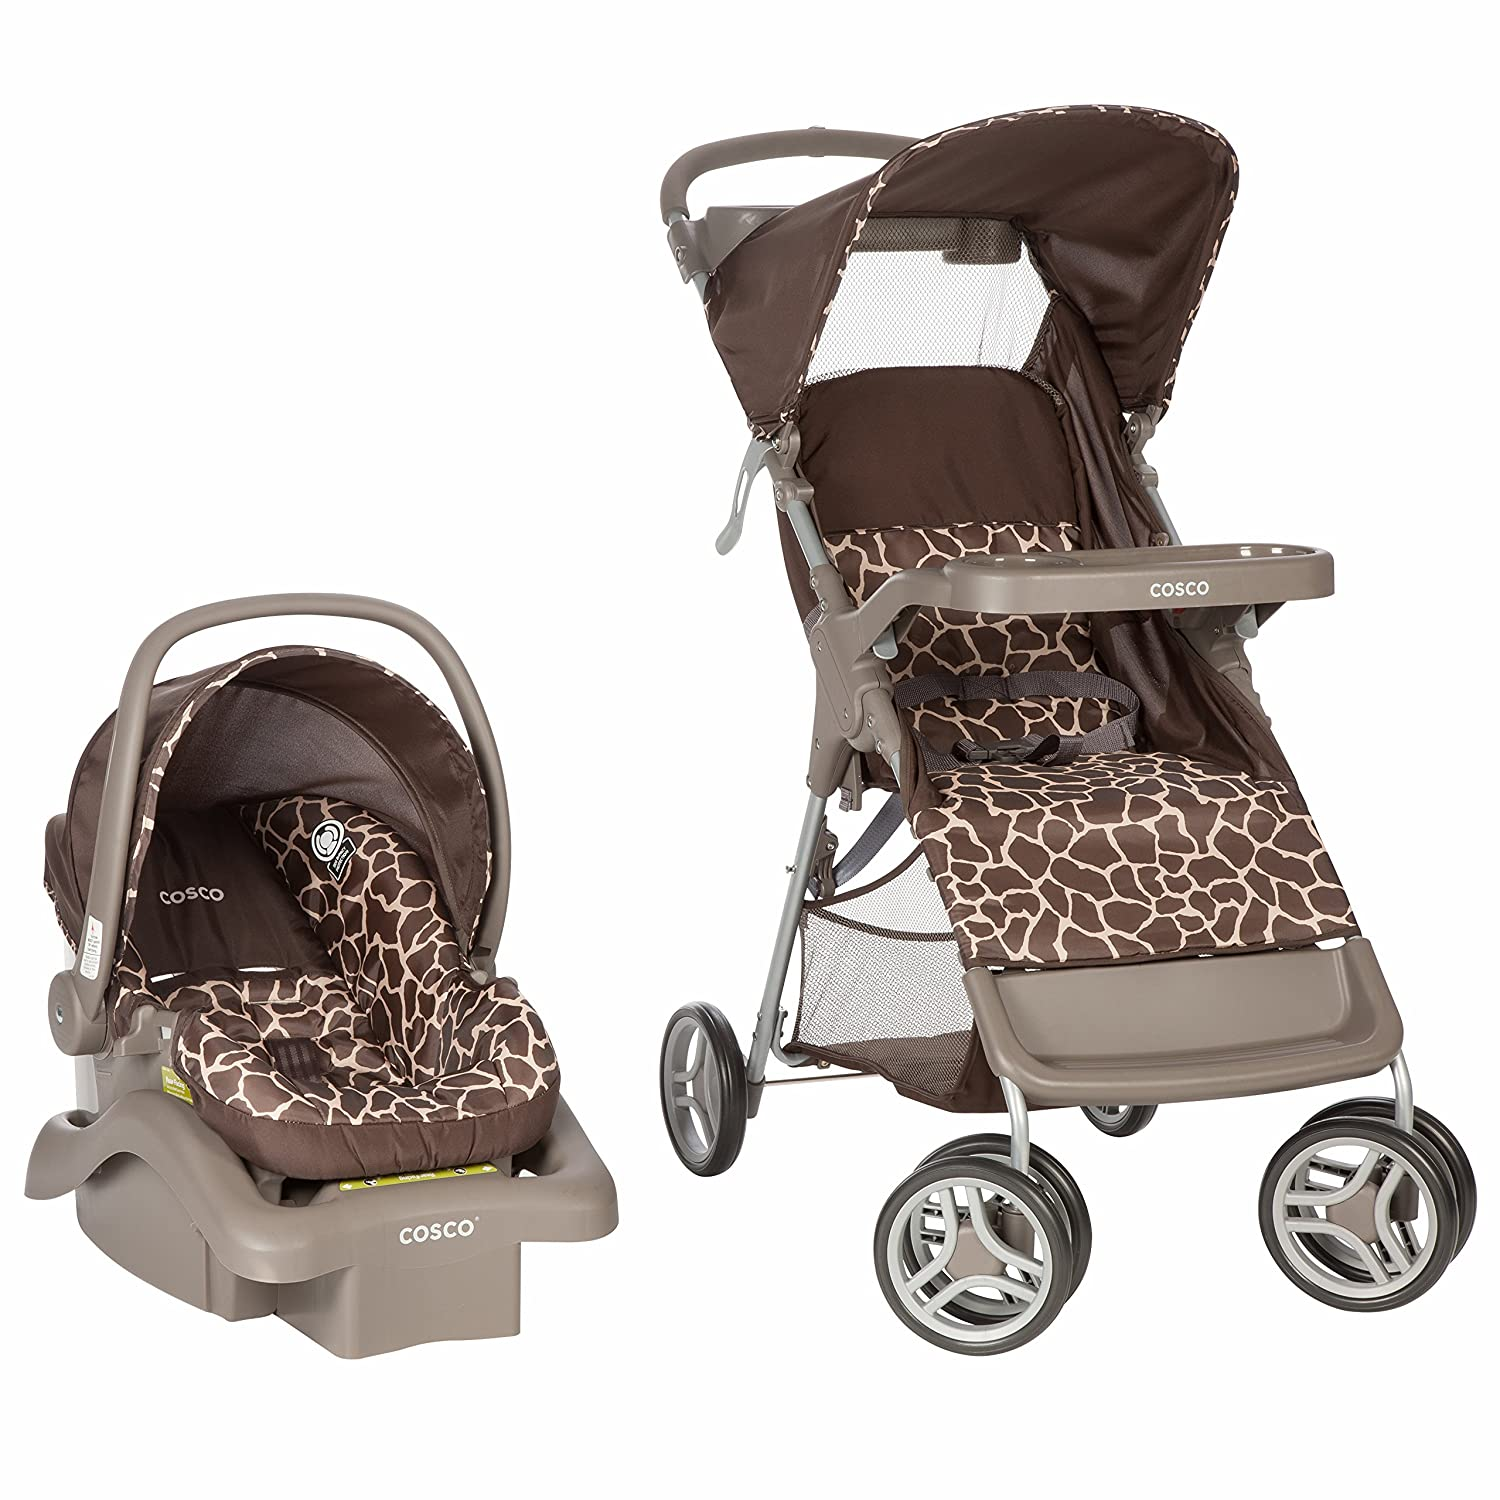 Cosco Lift & Stroll Travel System - Car Seat and Stroller – Suitable for Children Between 4 and 22 pounds, Quigley Dorel Juvenile Group